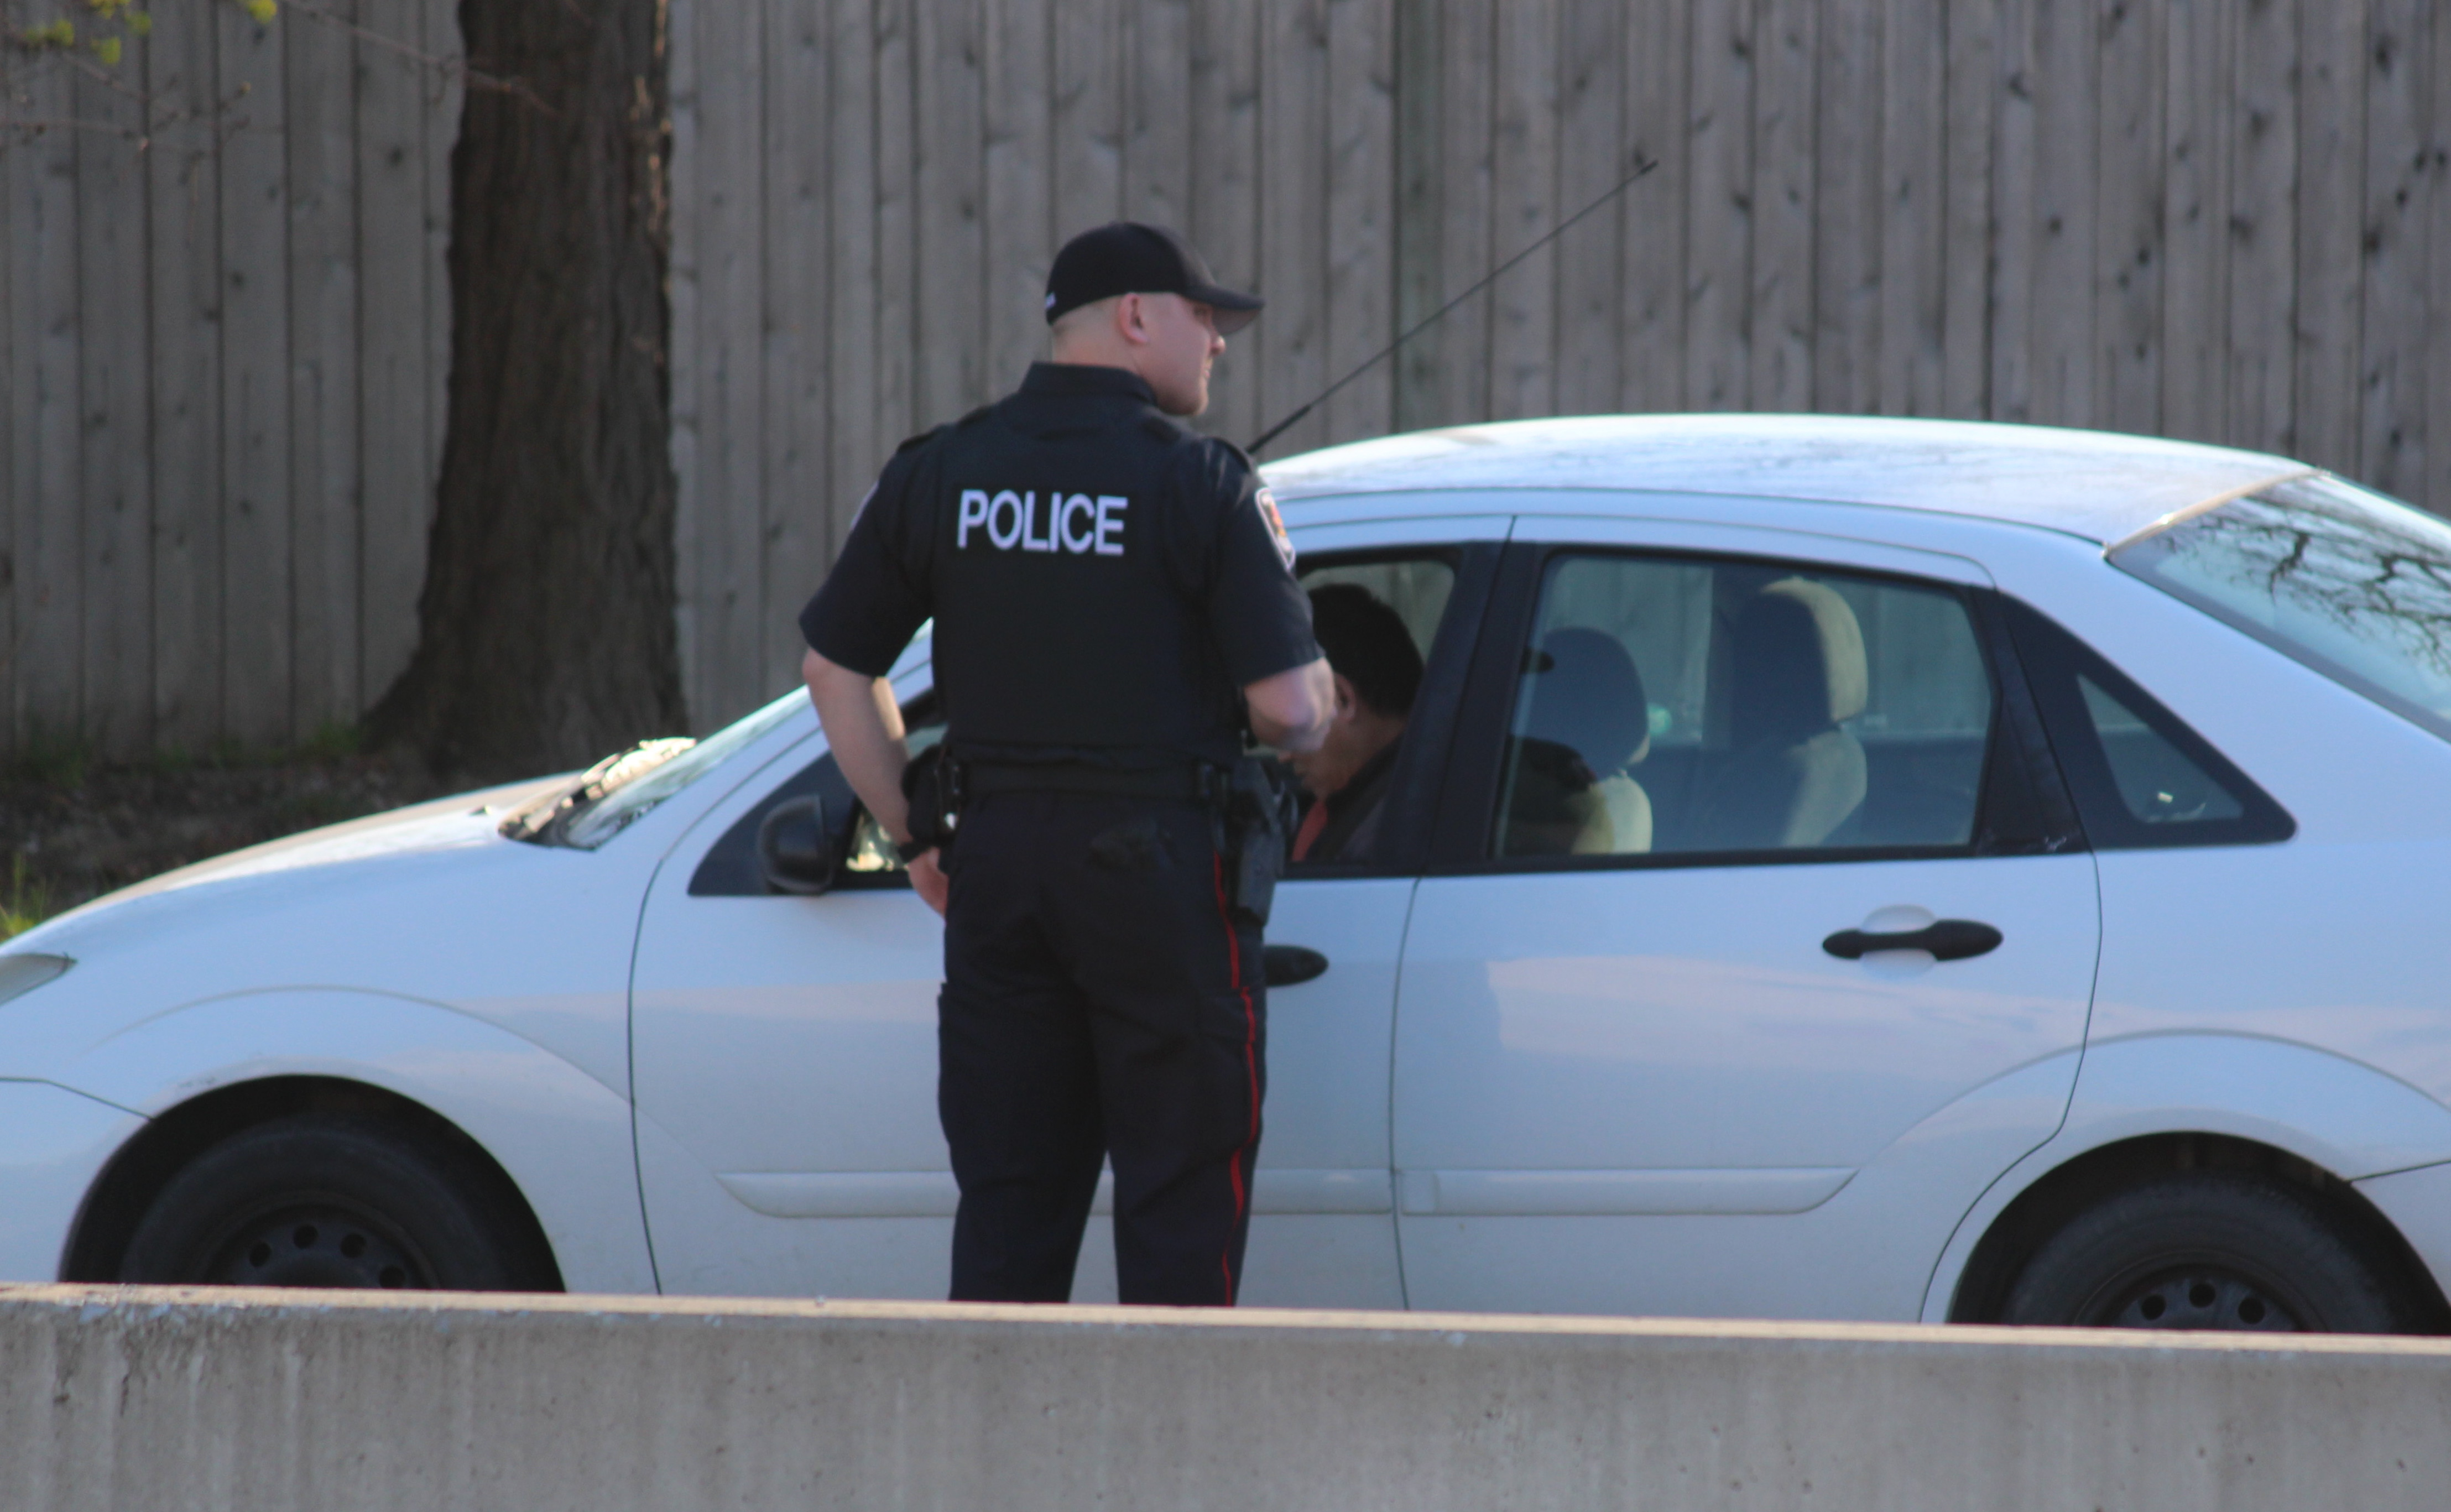 A Windsor police officer performs a traffic stop on Huron Church Rd., April 28, 2015. (Photo by Jason Viau)